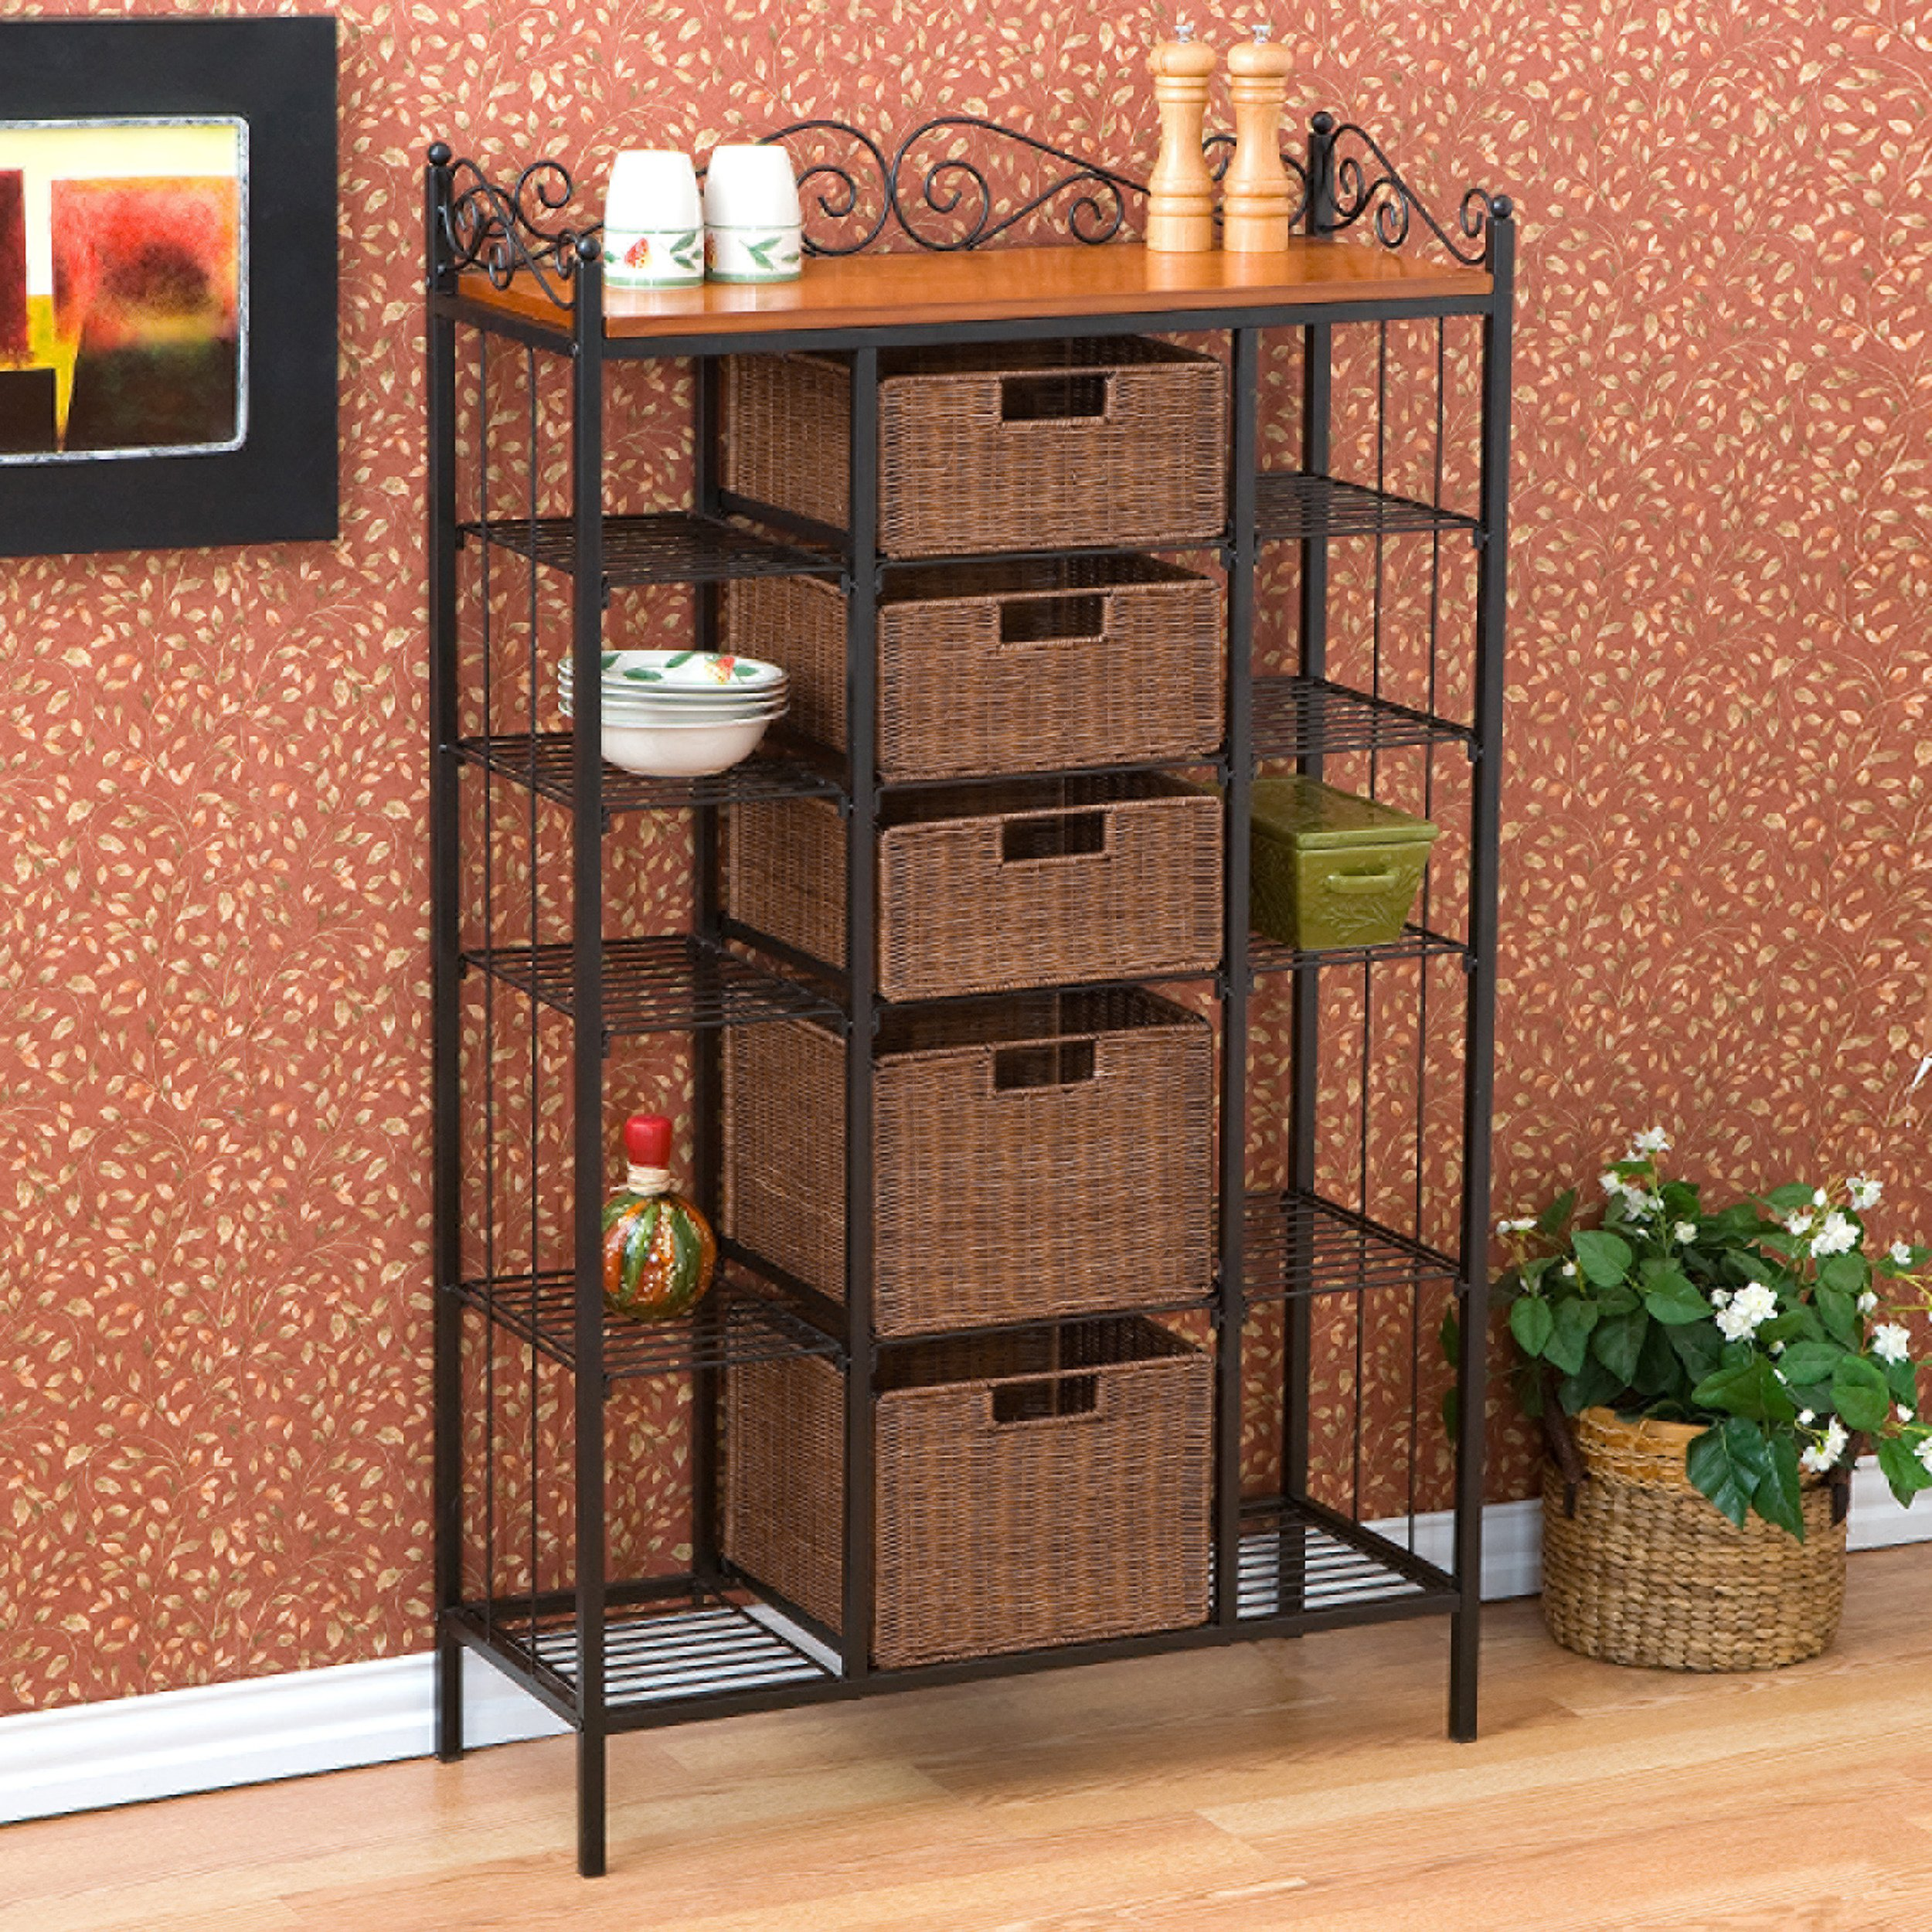 SEI Manilla 5-Drawer Baker's Rack by Southern Enterprises, Inc. (Image #5)